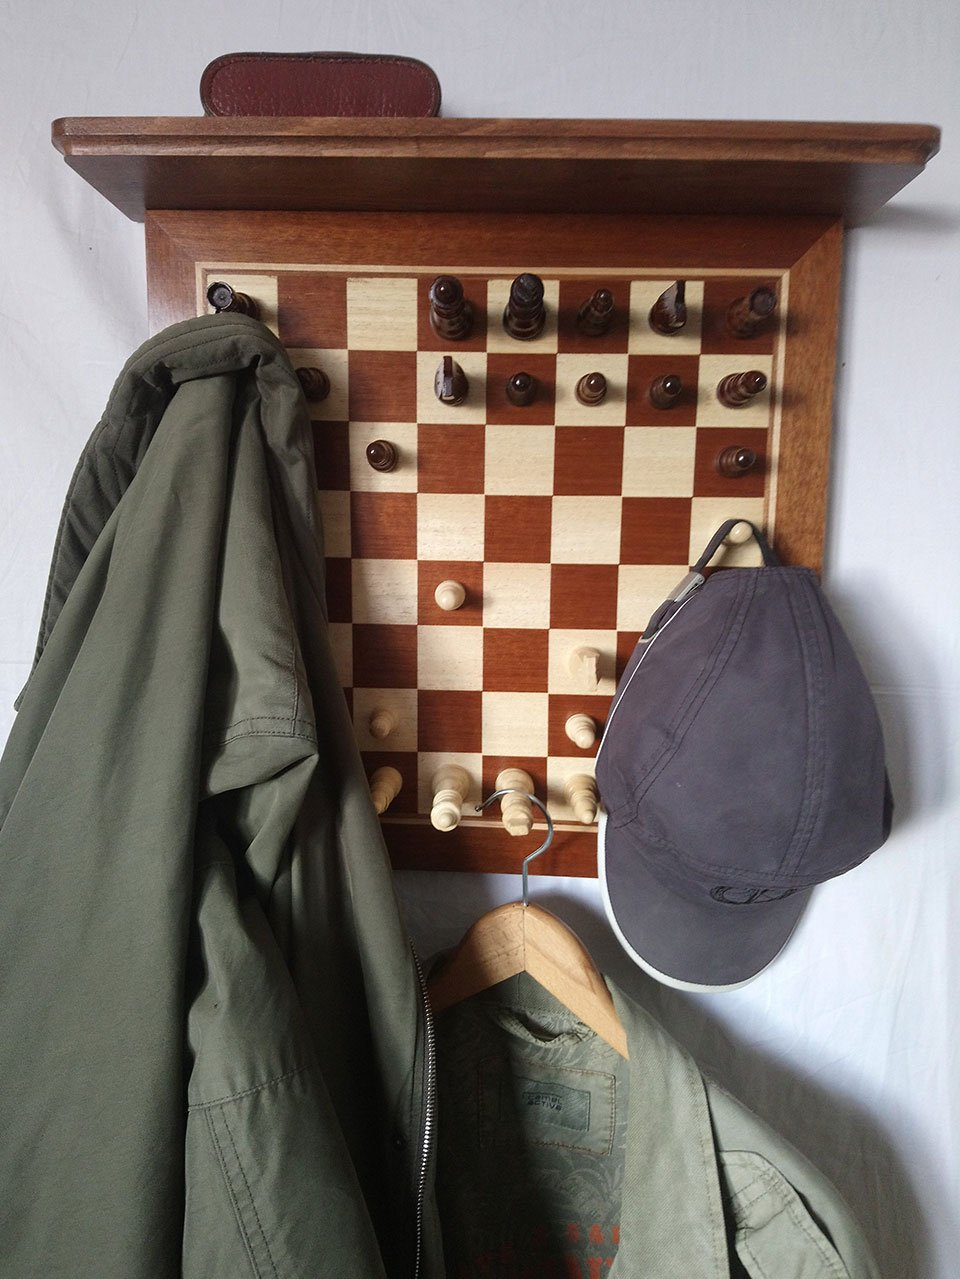 Chessboard Coat Rack